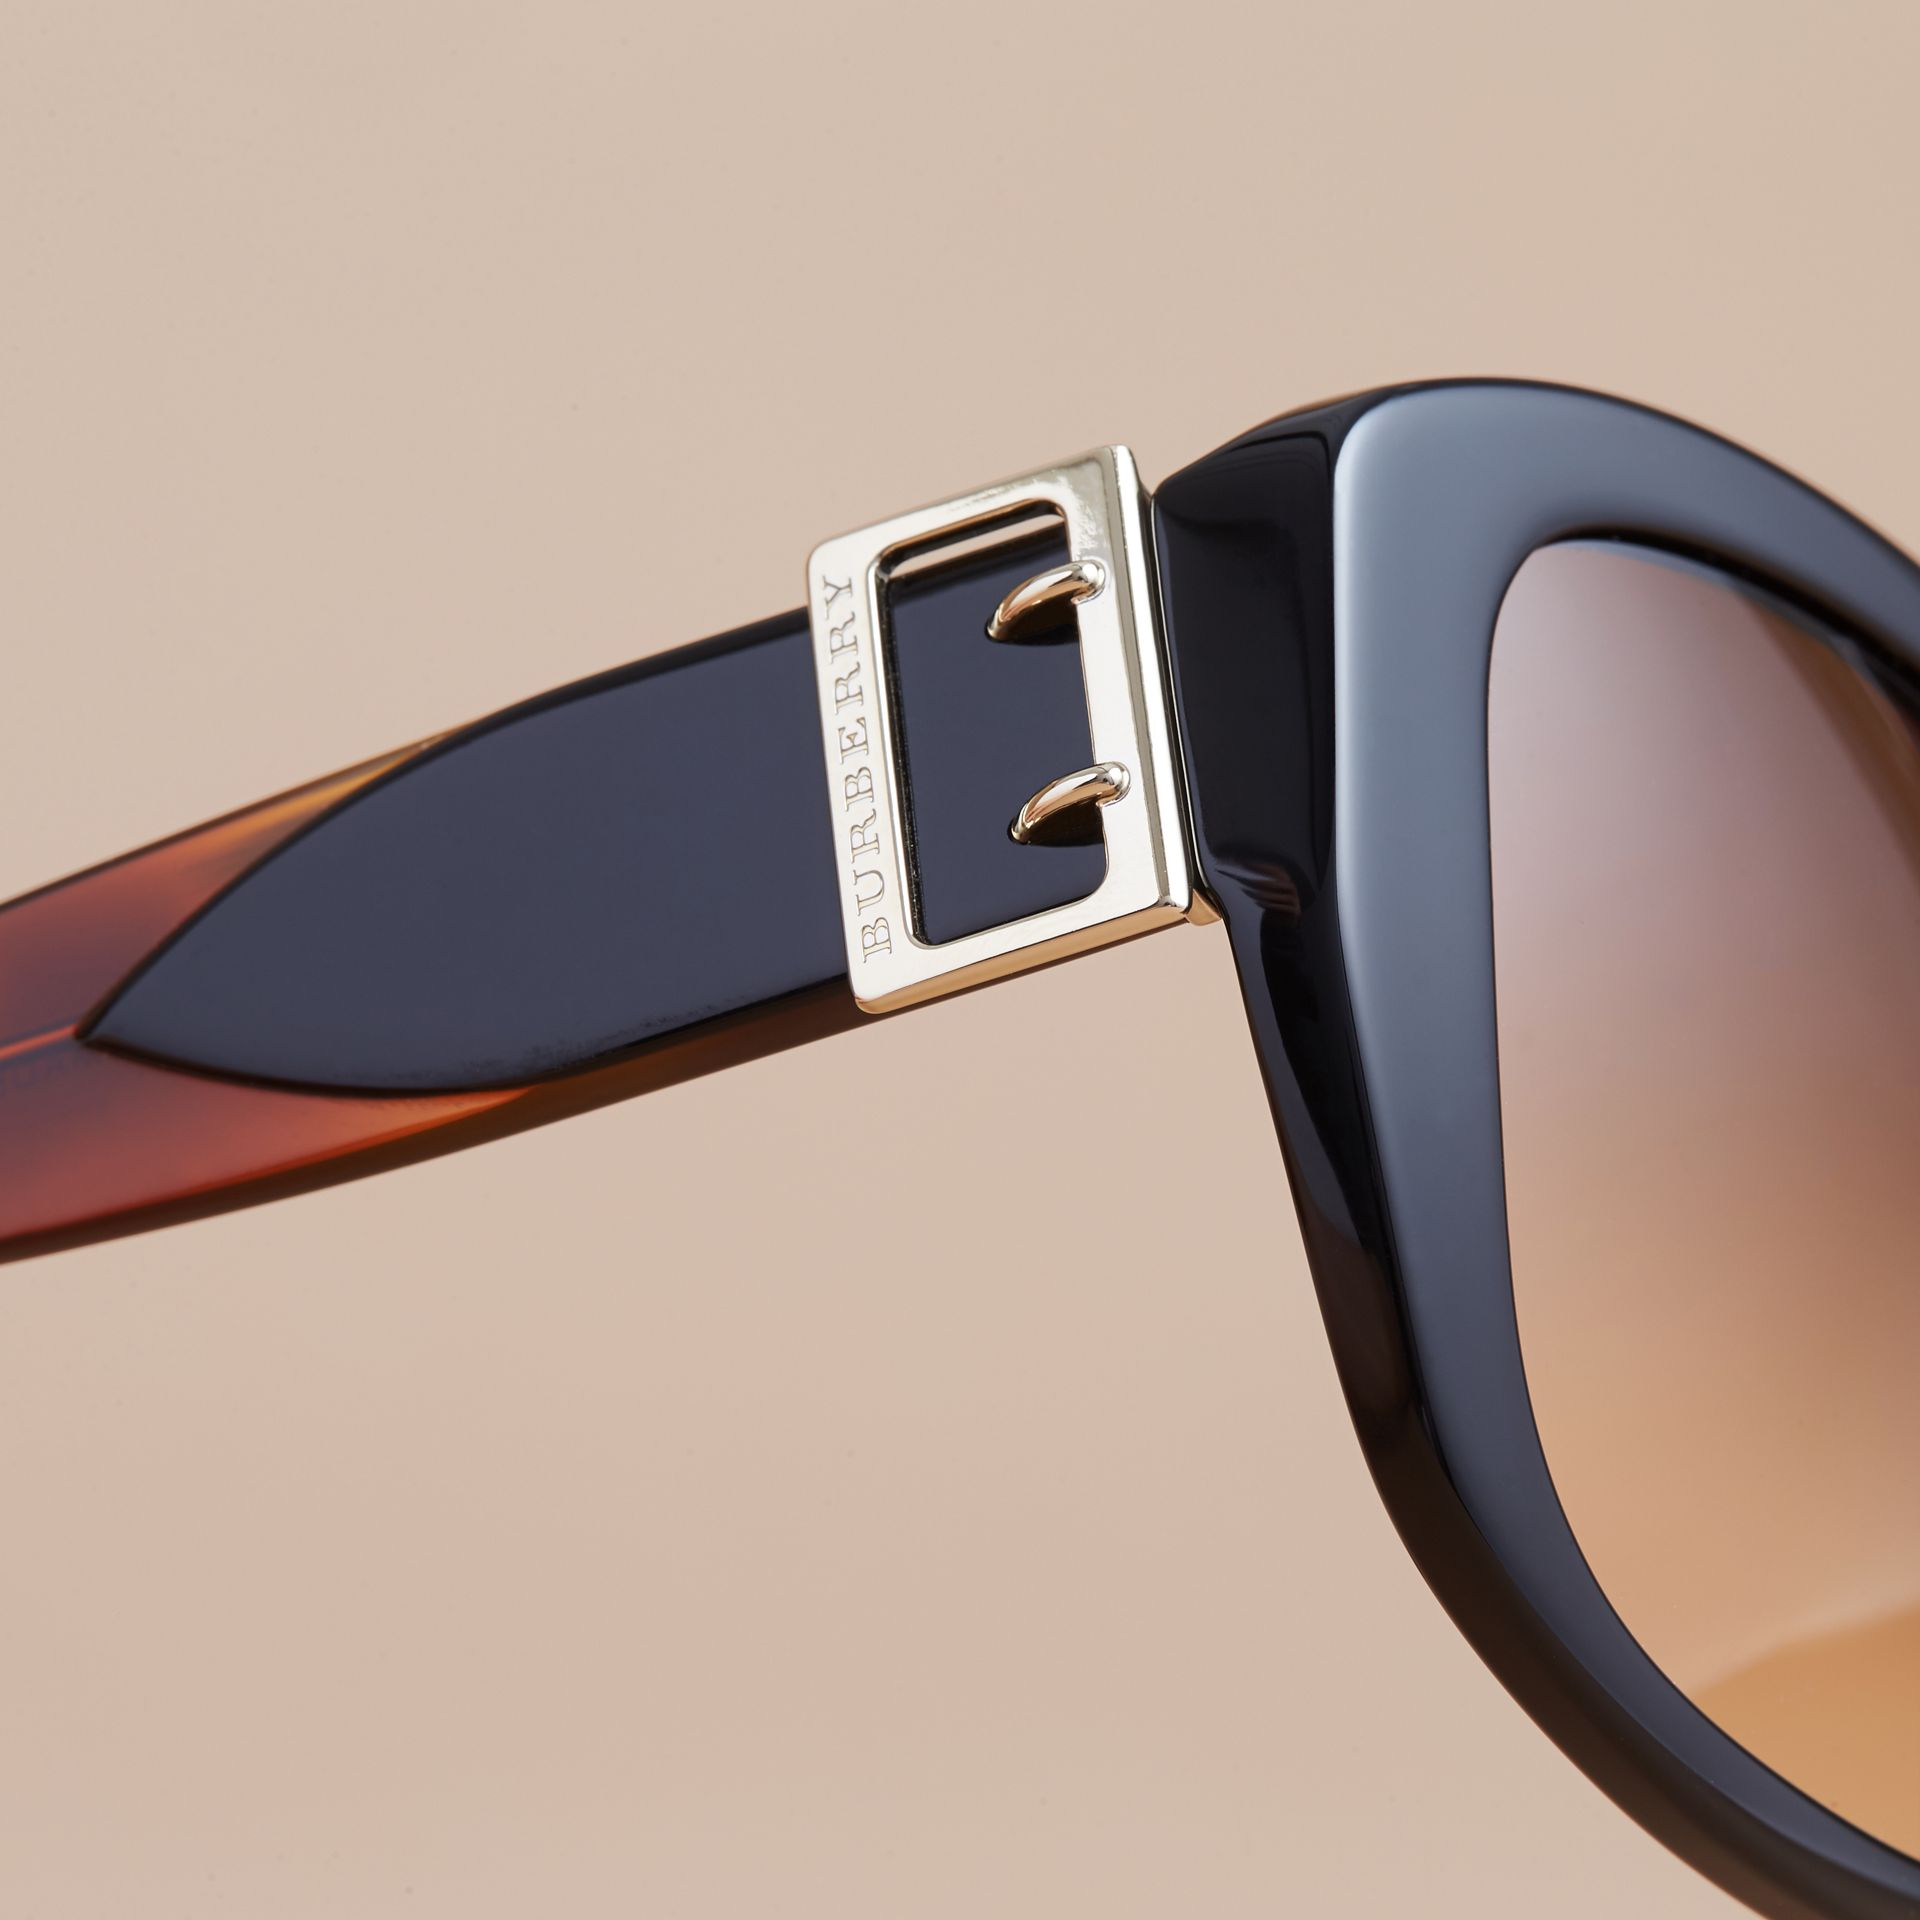 Buckle Detail Oversize Square Frame Sunglasses in Black - Women | Burberry Australia - gallery image 2